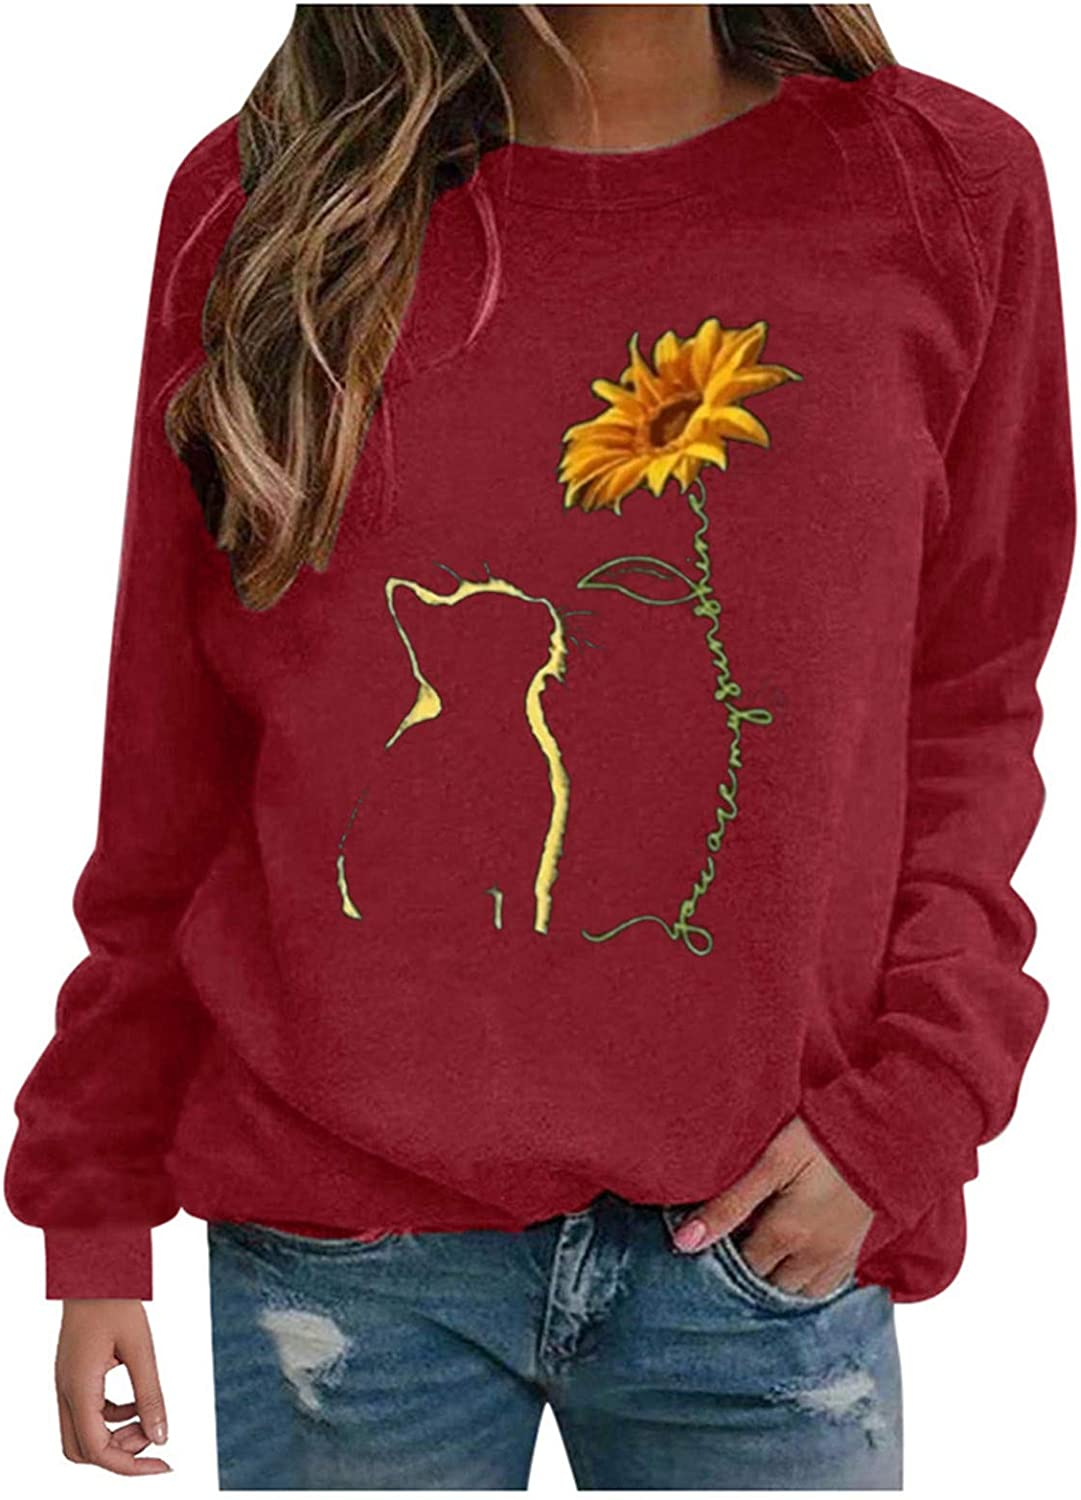 FABIURT Cute Sweatshirts for Women, Womens Casual Floral Printed Long Sleeve Pullover Graphic Crewneck Sweaters Blouses